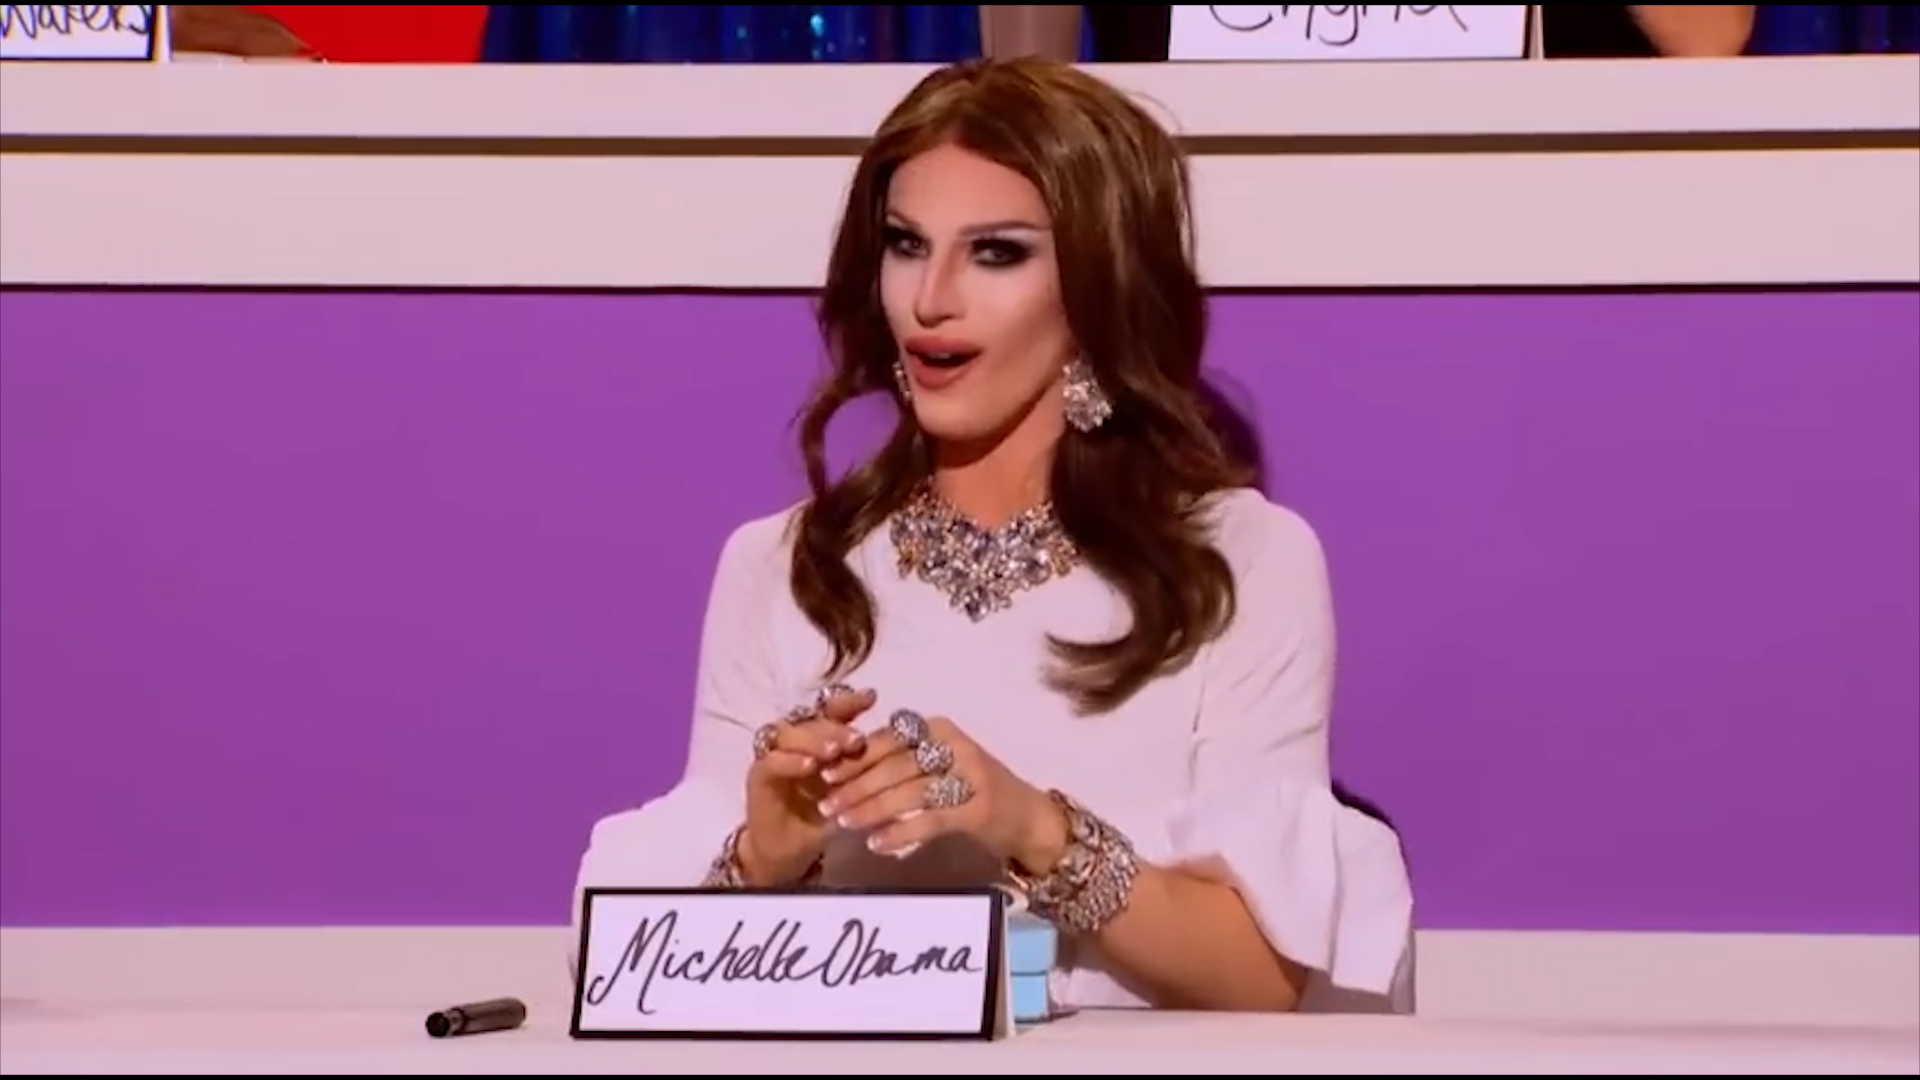 RuPaul's Drag Race: Aquaria plays Melania Trump